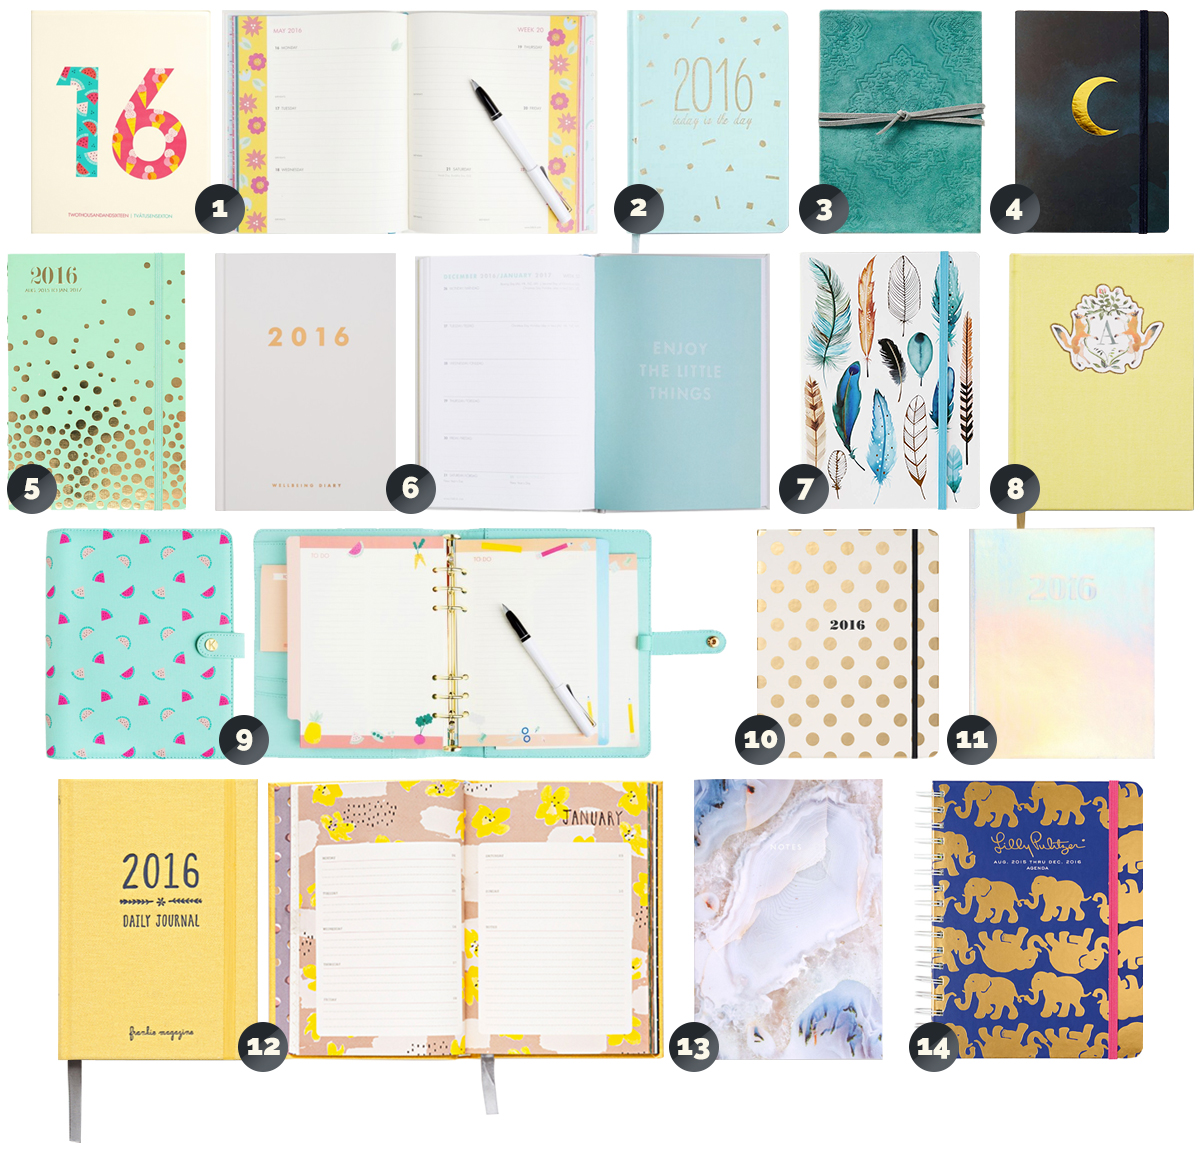 The 2016 Planner and Journal Guide |http://BananaBloom.com #stationary #planner #journal #diary #2016